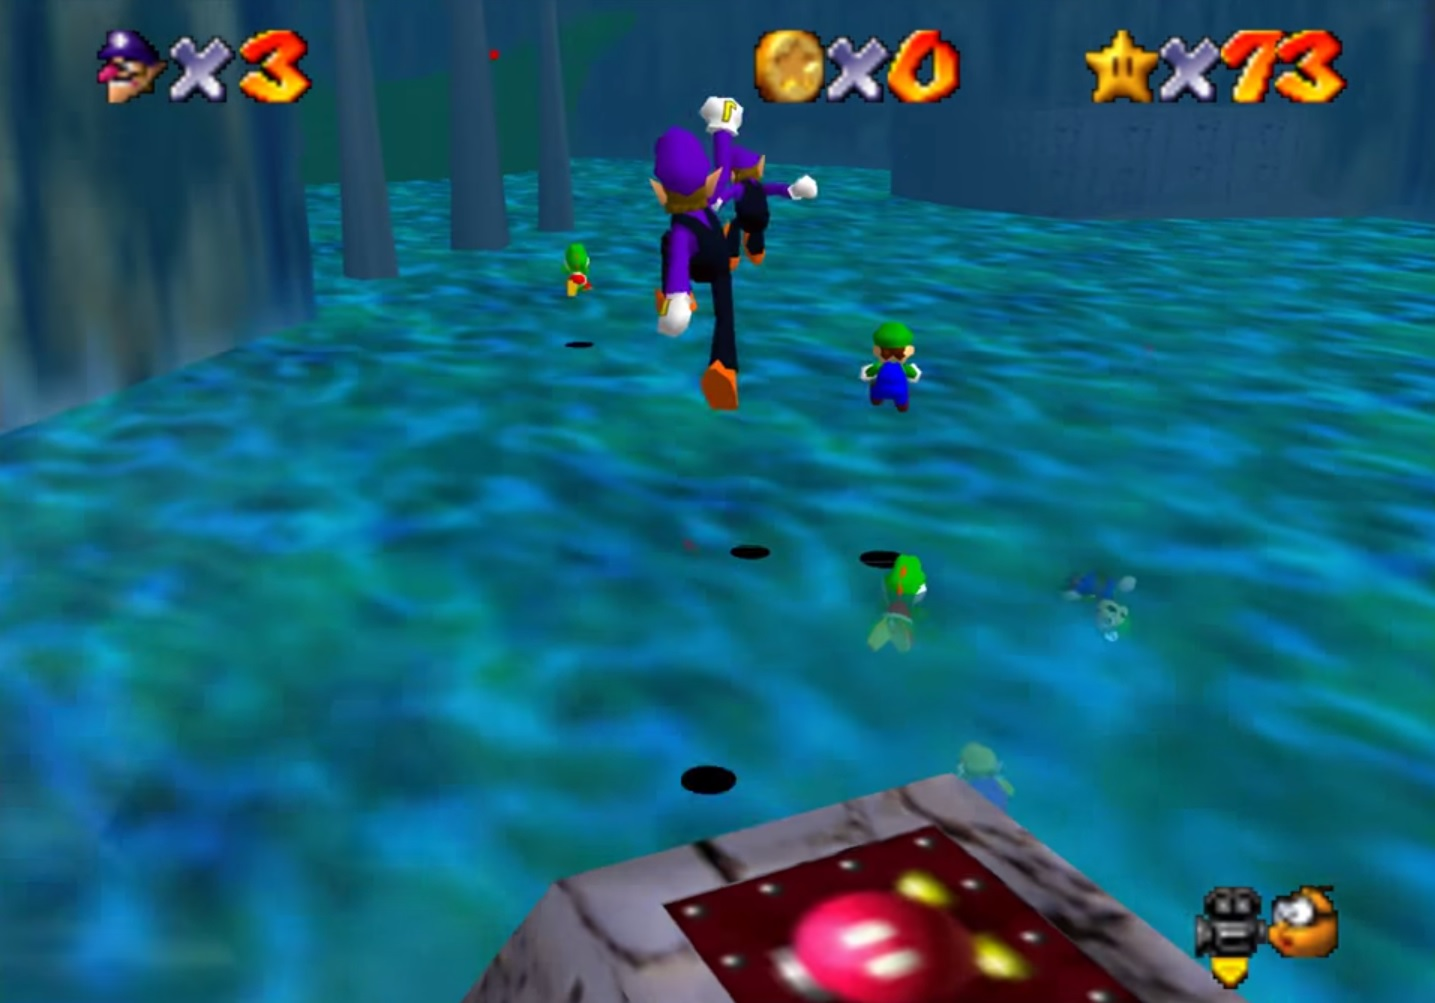 Nintendo issues takedowns for 'Super Mario 64 Online' mod videos